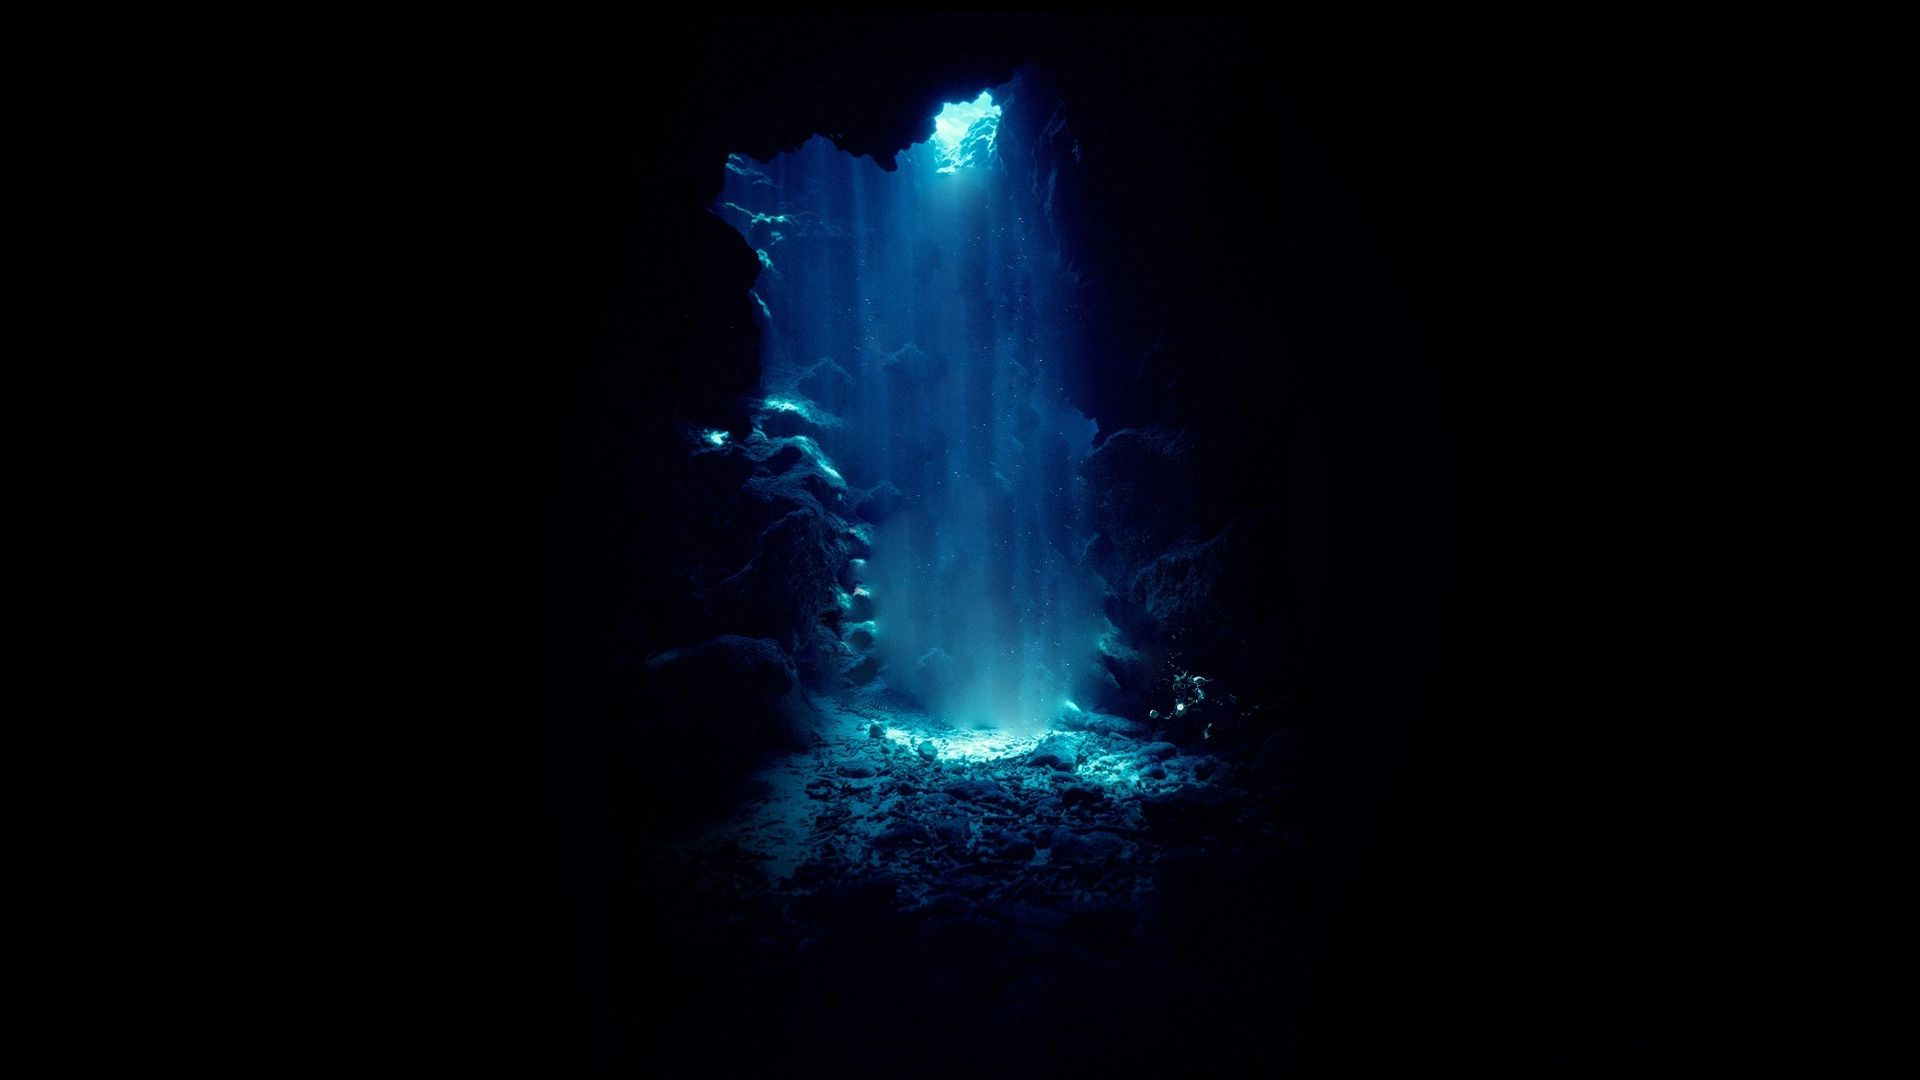 Cave Blue hd wallpaper 1080p for pc